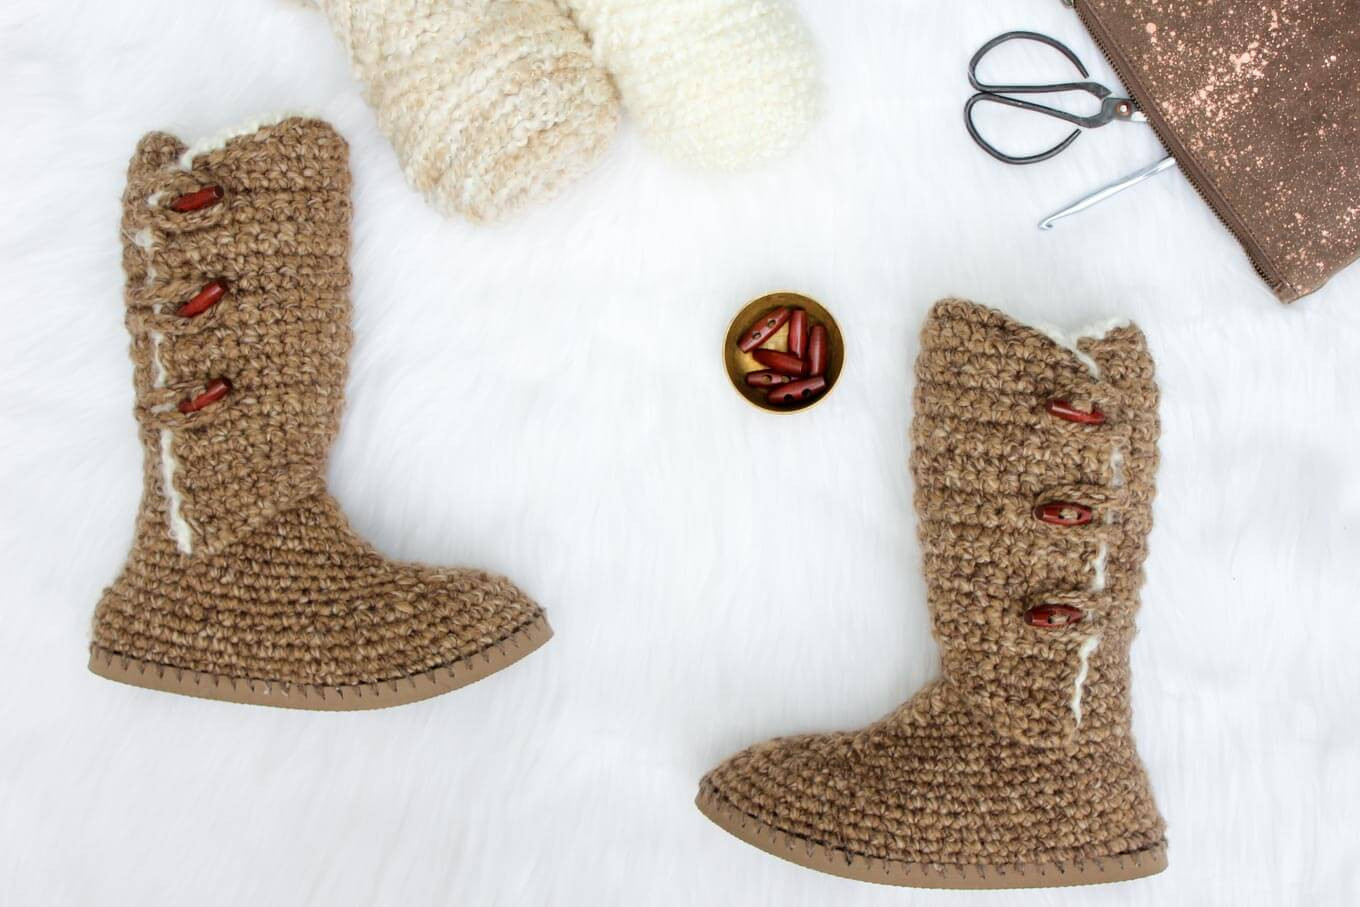 Crochet Boots Inspirational Ugg Crochet Sweater Boots with Flip Flop soles Free Of Brilliant 43 Photos Crochet Boots